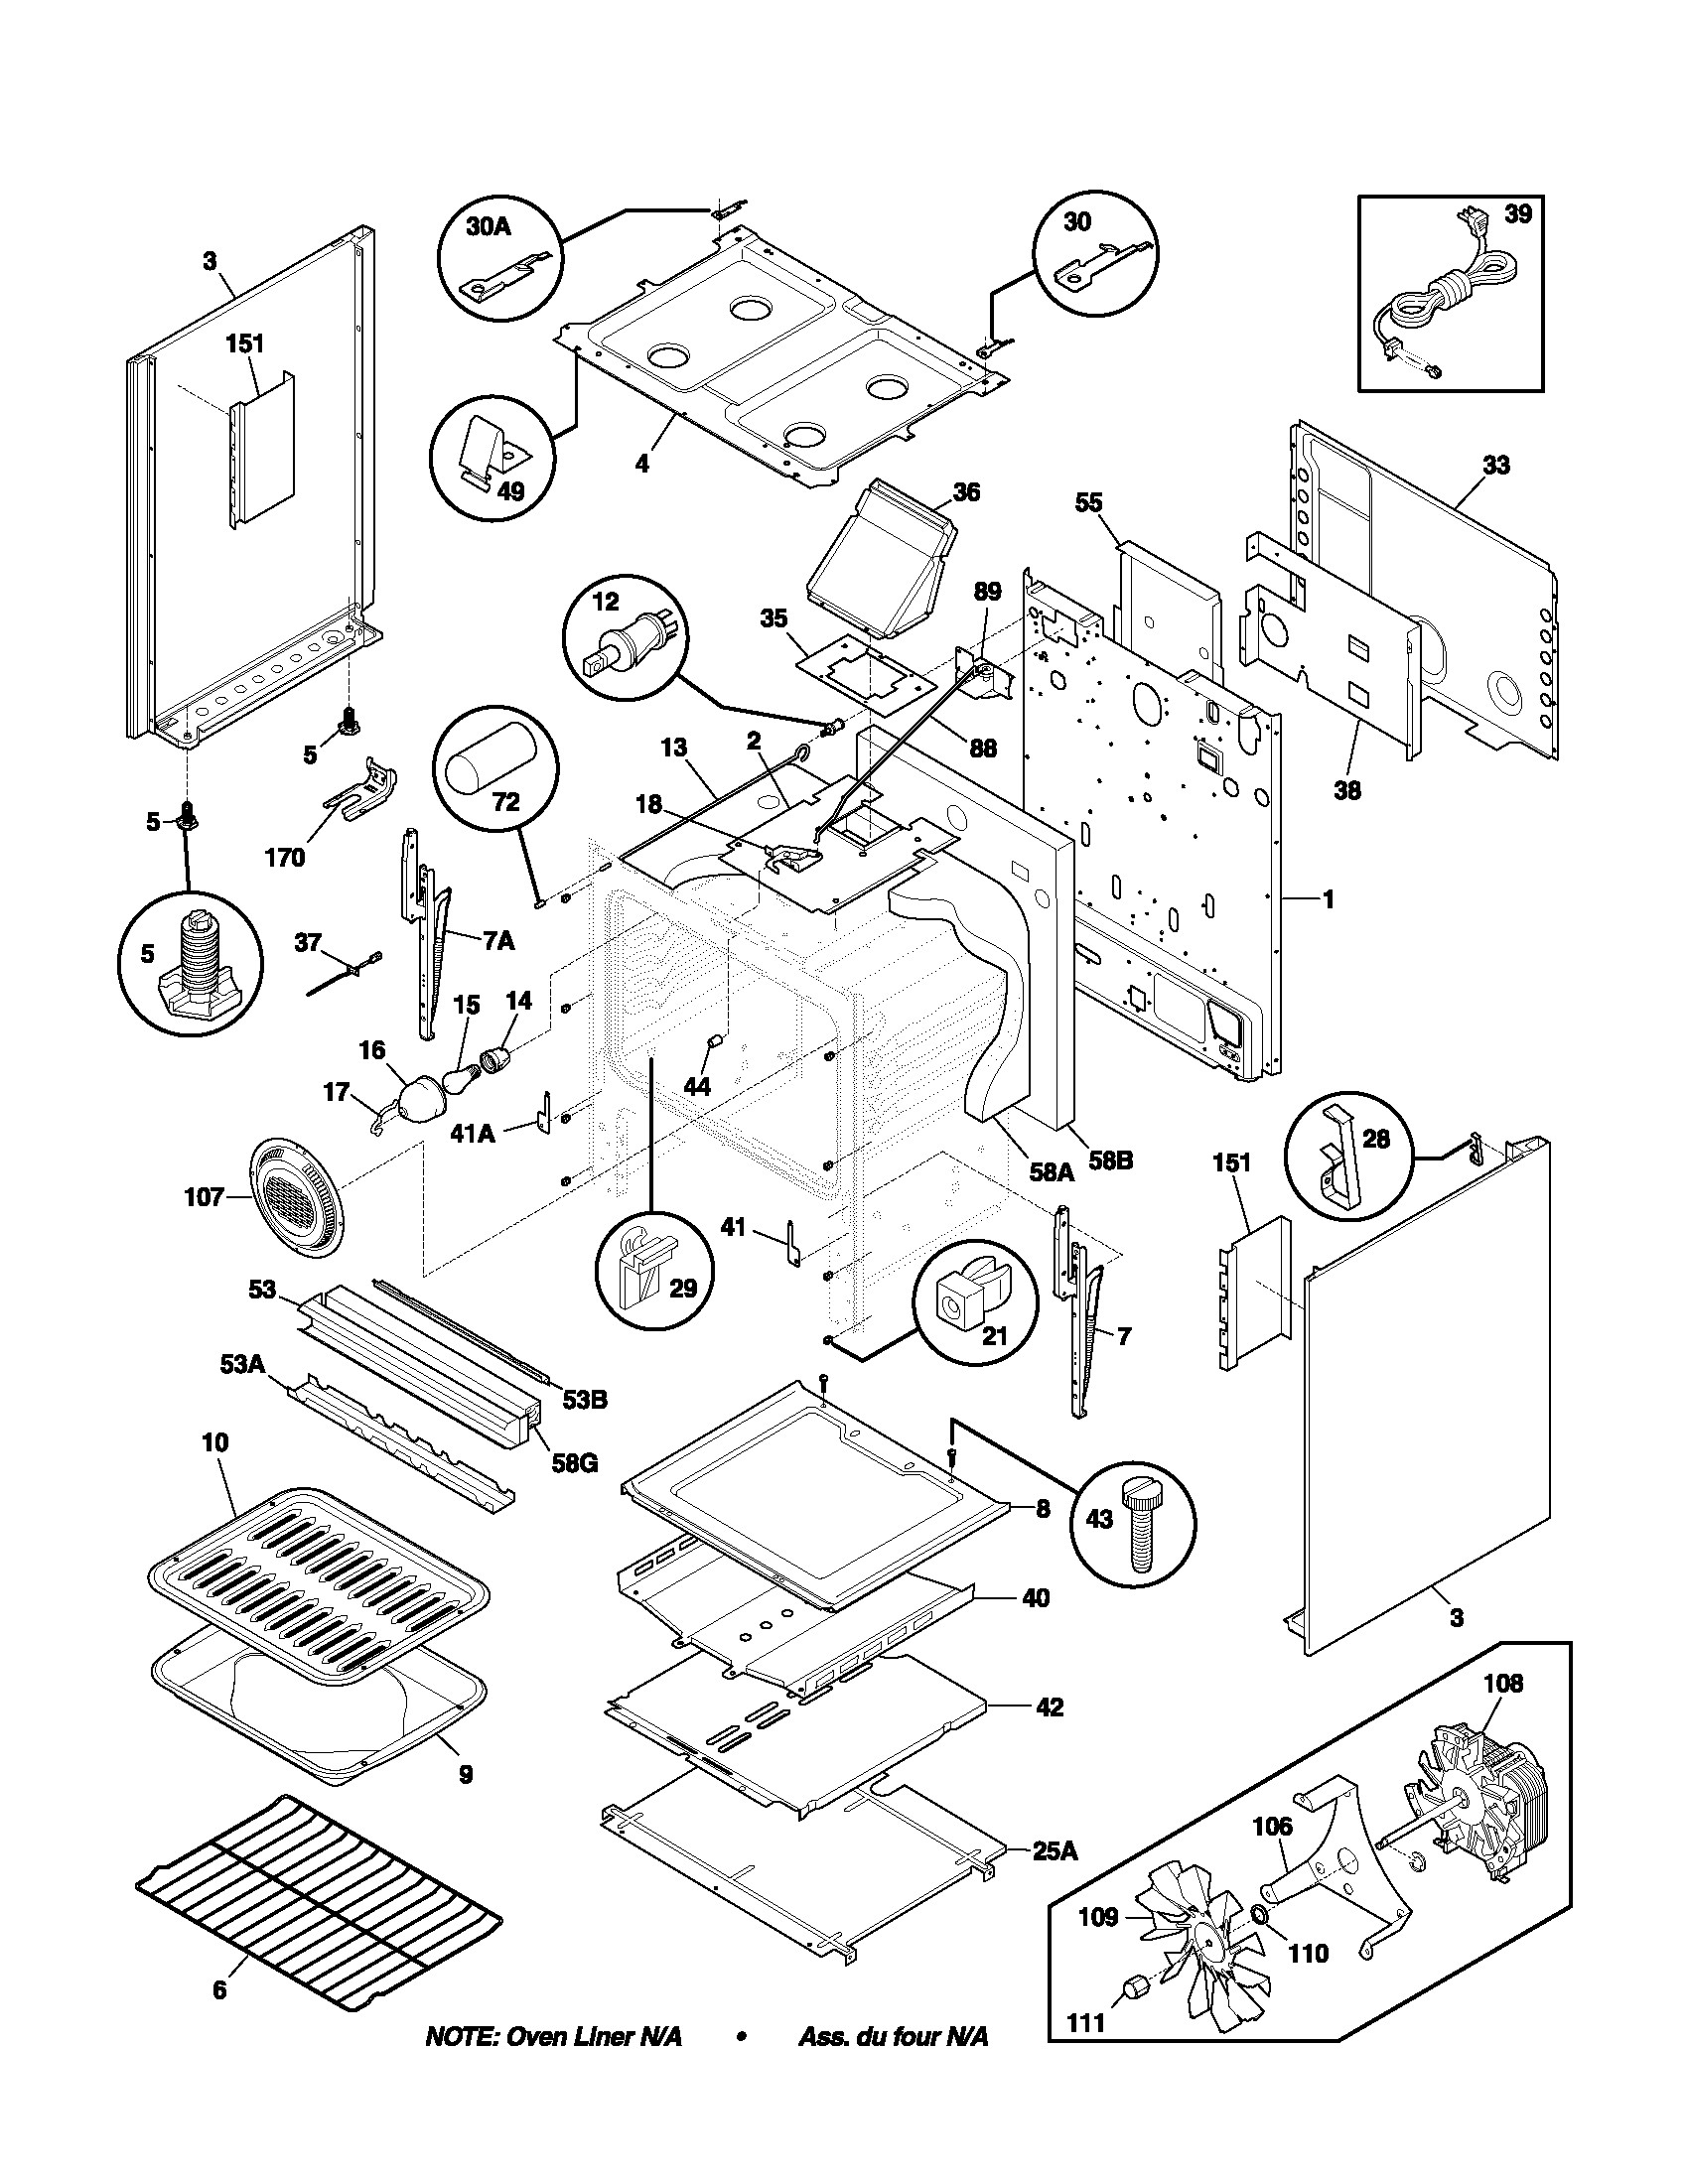 Frigidaire Stove Parts Diagram Looking for Frigidaire Model Glgf377aqe Gas Range Repair Of Frigidaire Stove Parts Diagram